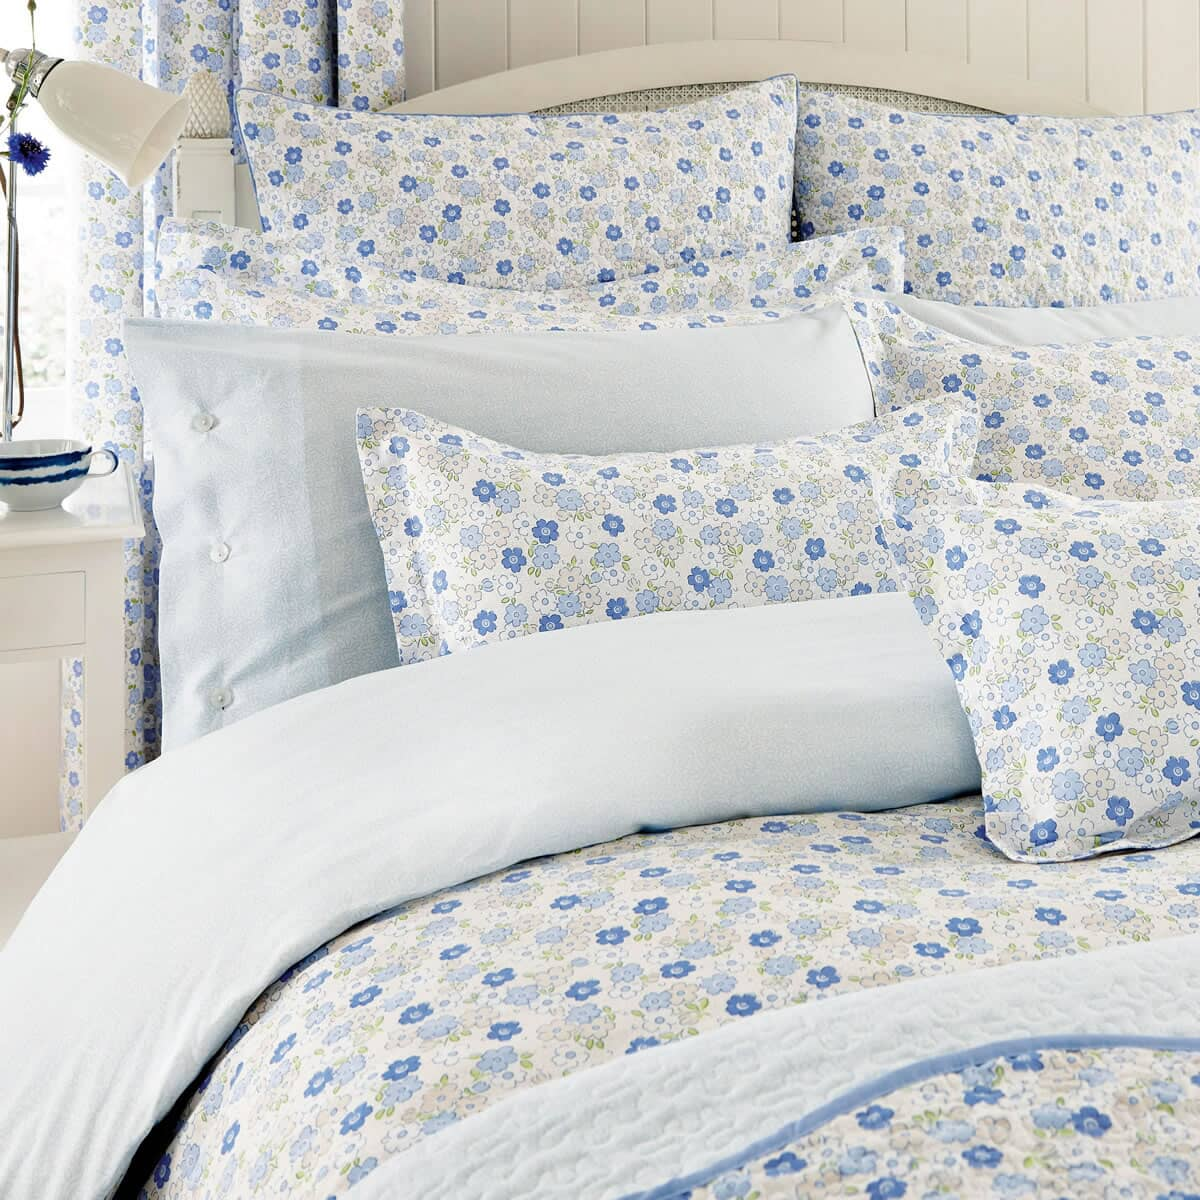 Cot Duvet And Cover Sets